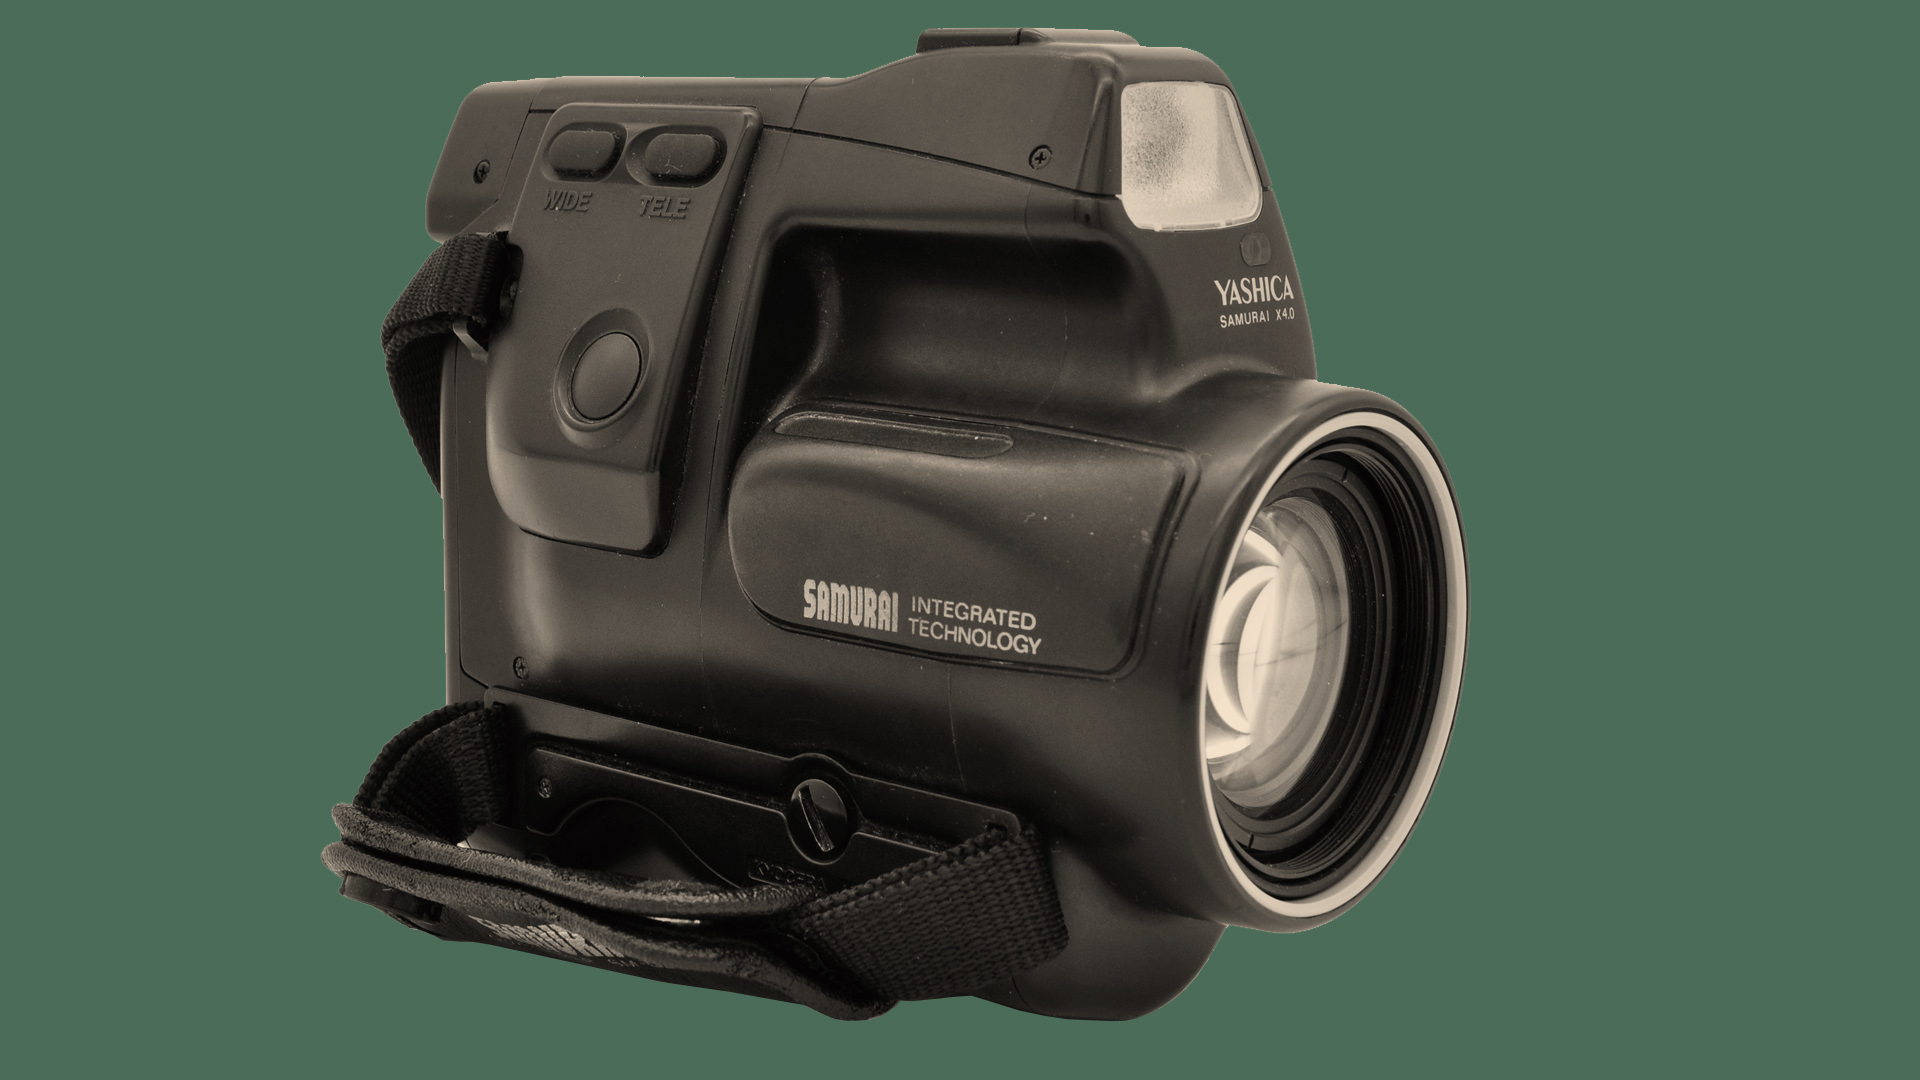 The front of the Kyocera Samurai camera on a green background